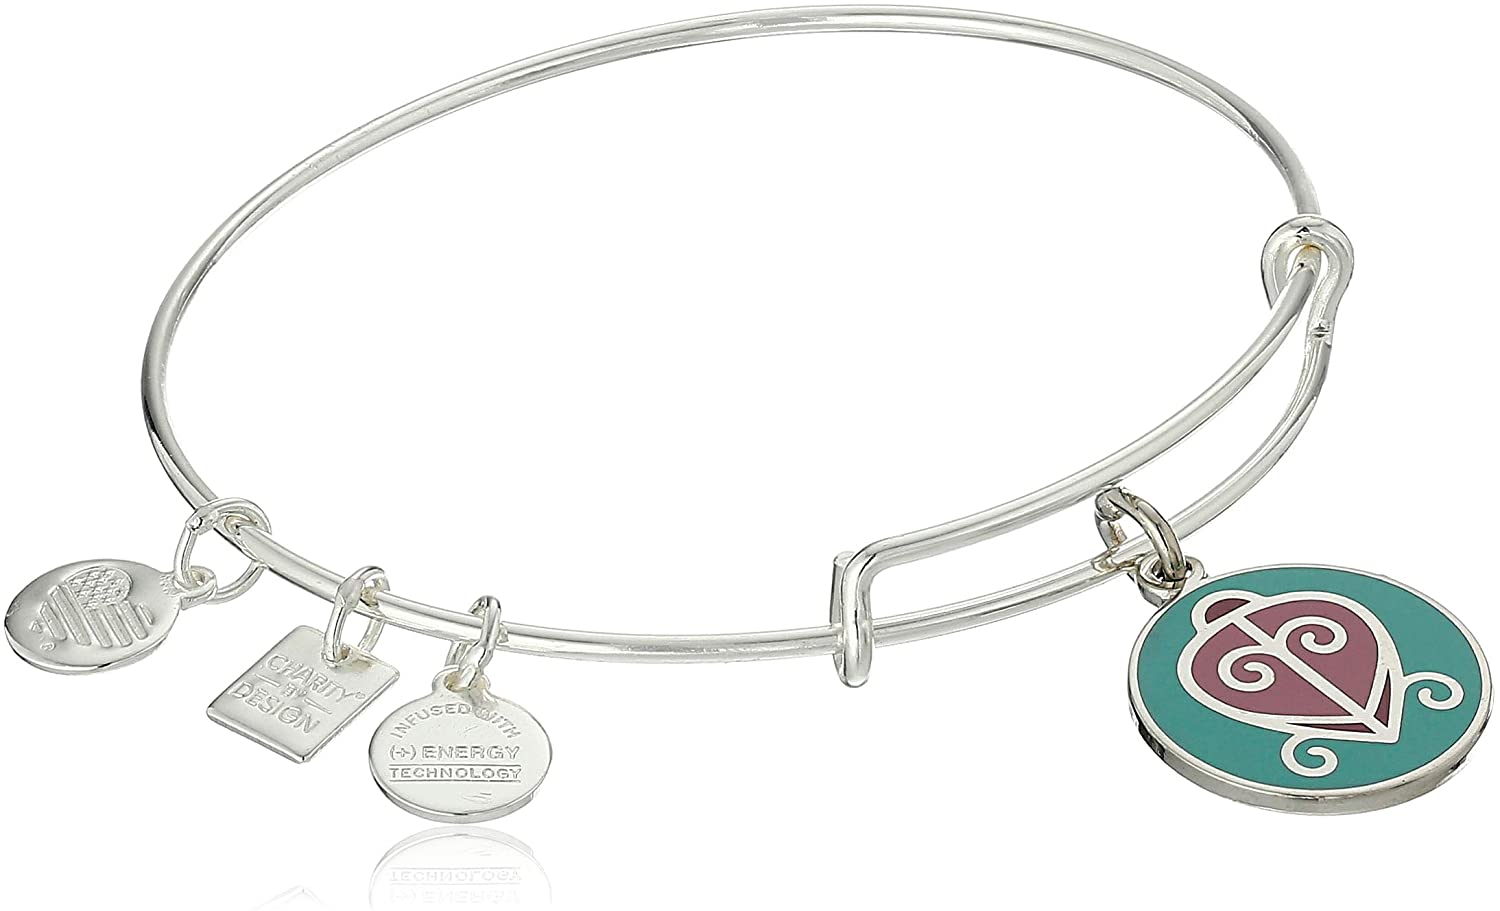 Alex and Ani Women's Charity by Design - The Way Home Expandable Charm Bangle Bracelet